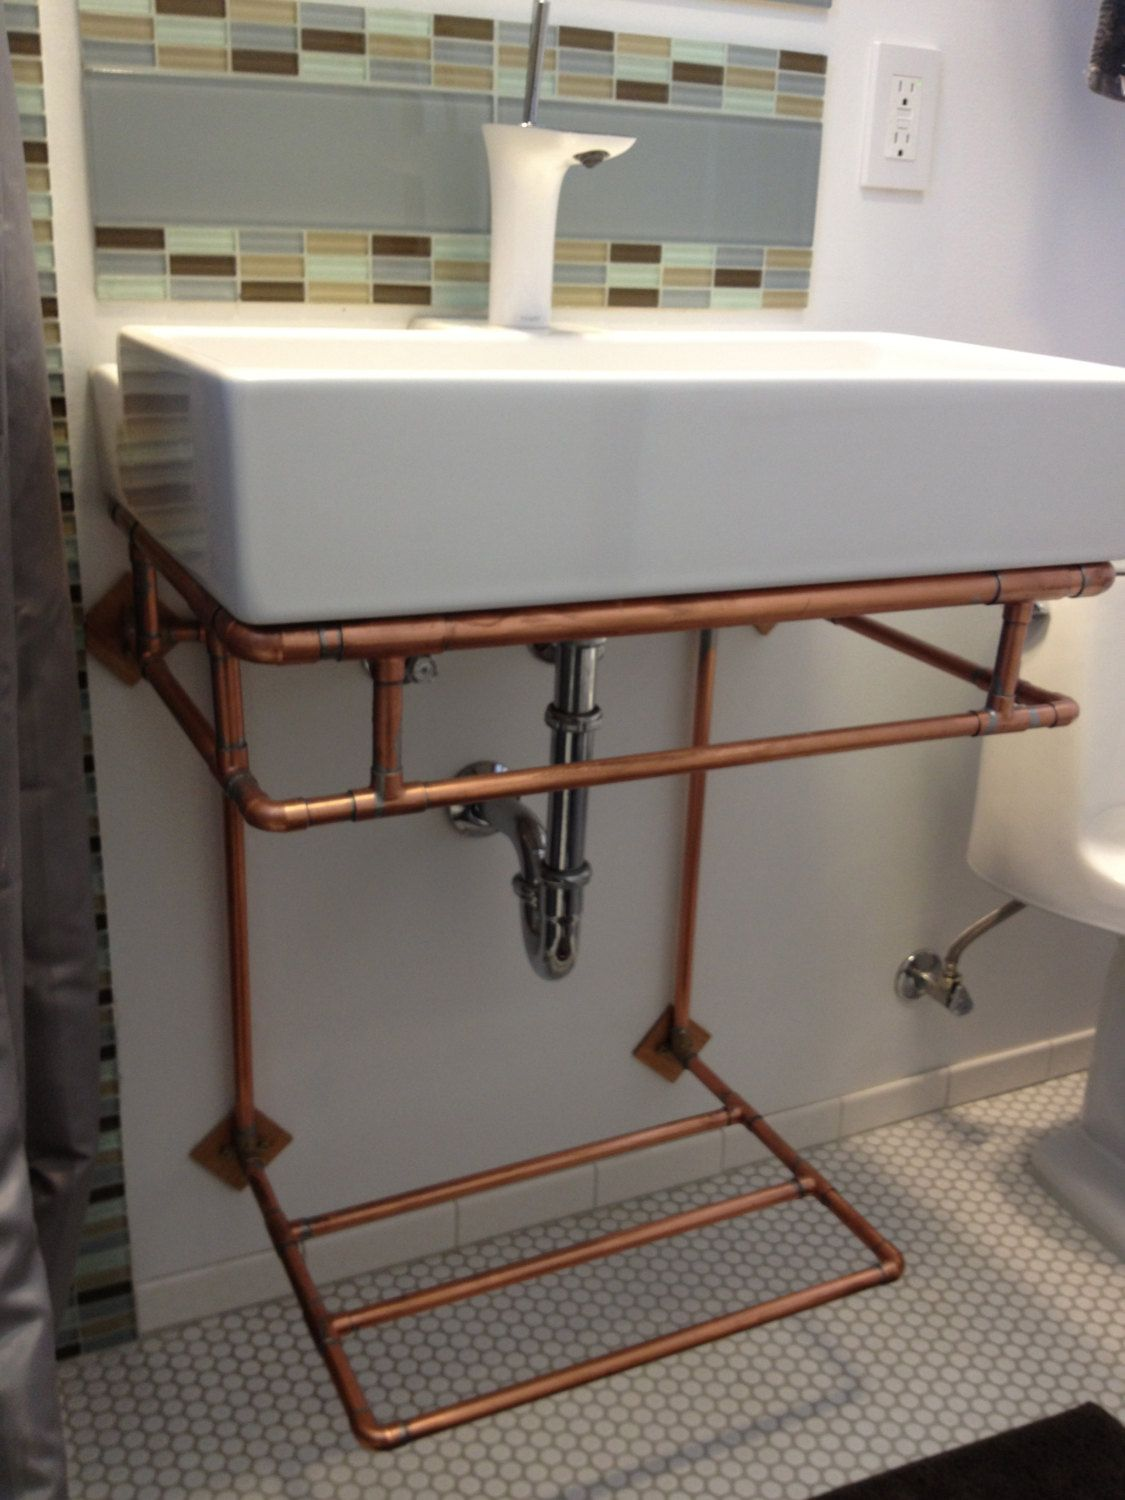 Copper Wall Mounted Bathroom Sink Stand With Towel Rack